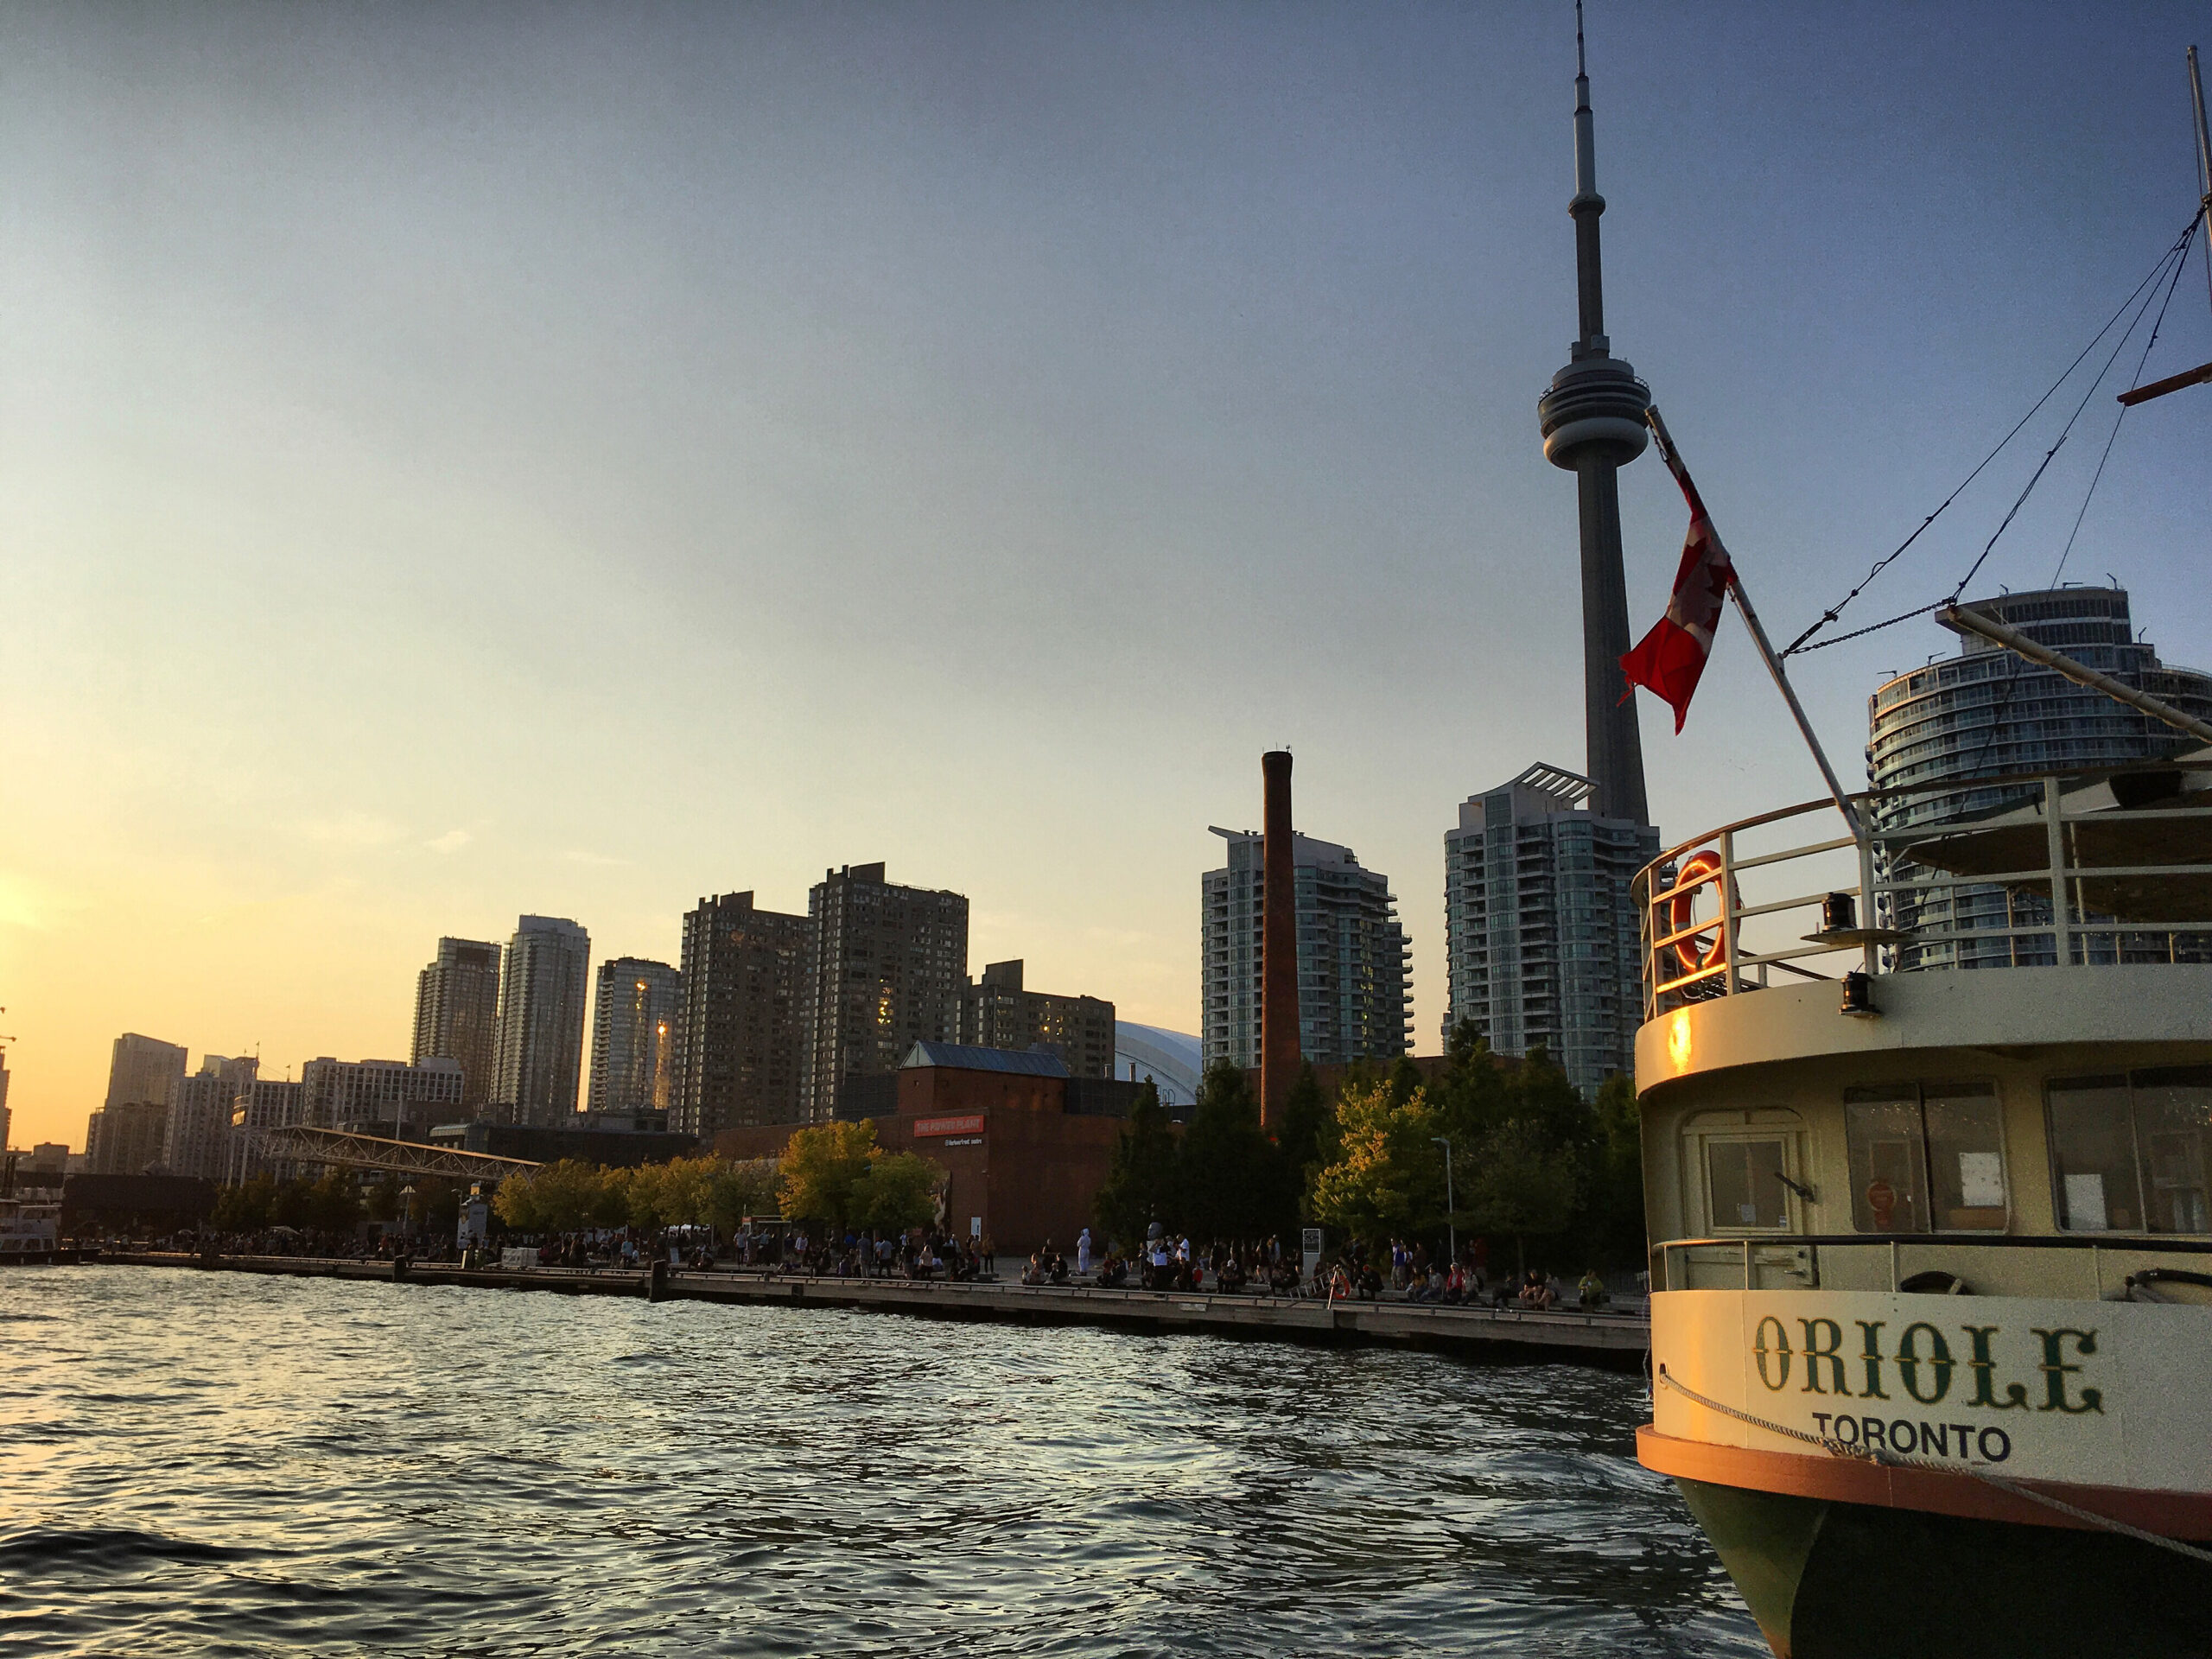 Toronto Harbourfront at Dusk